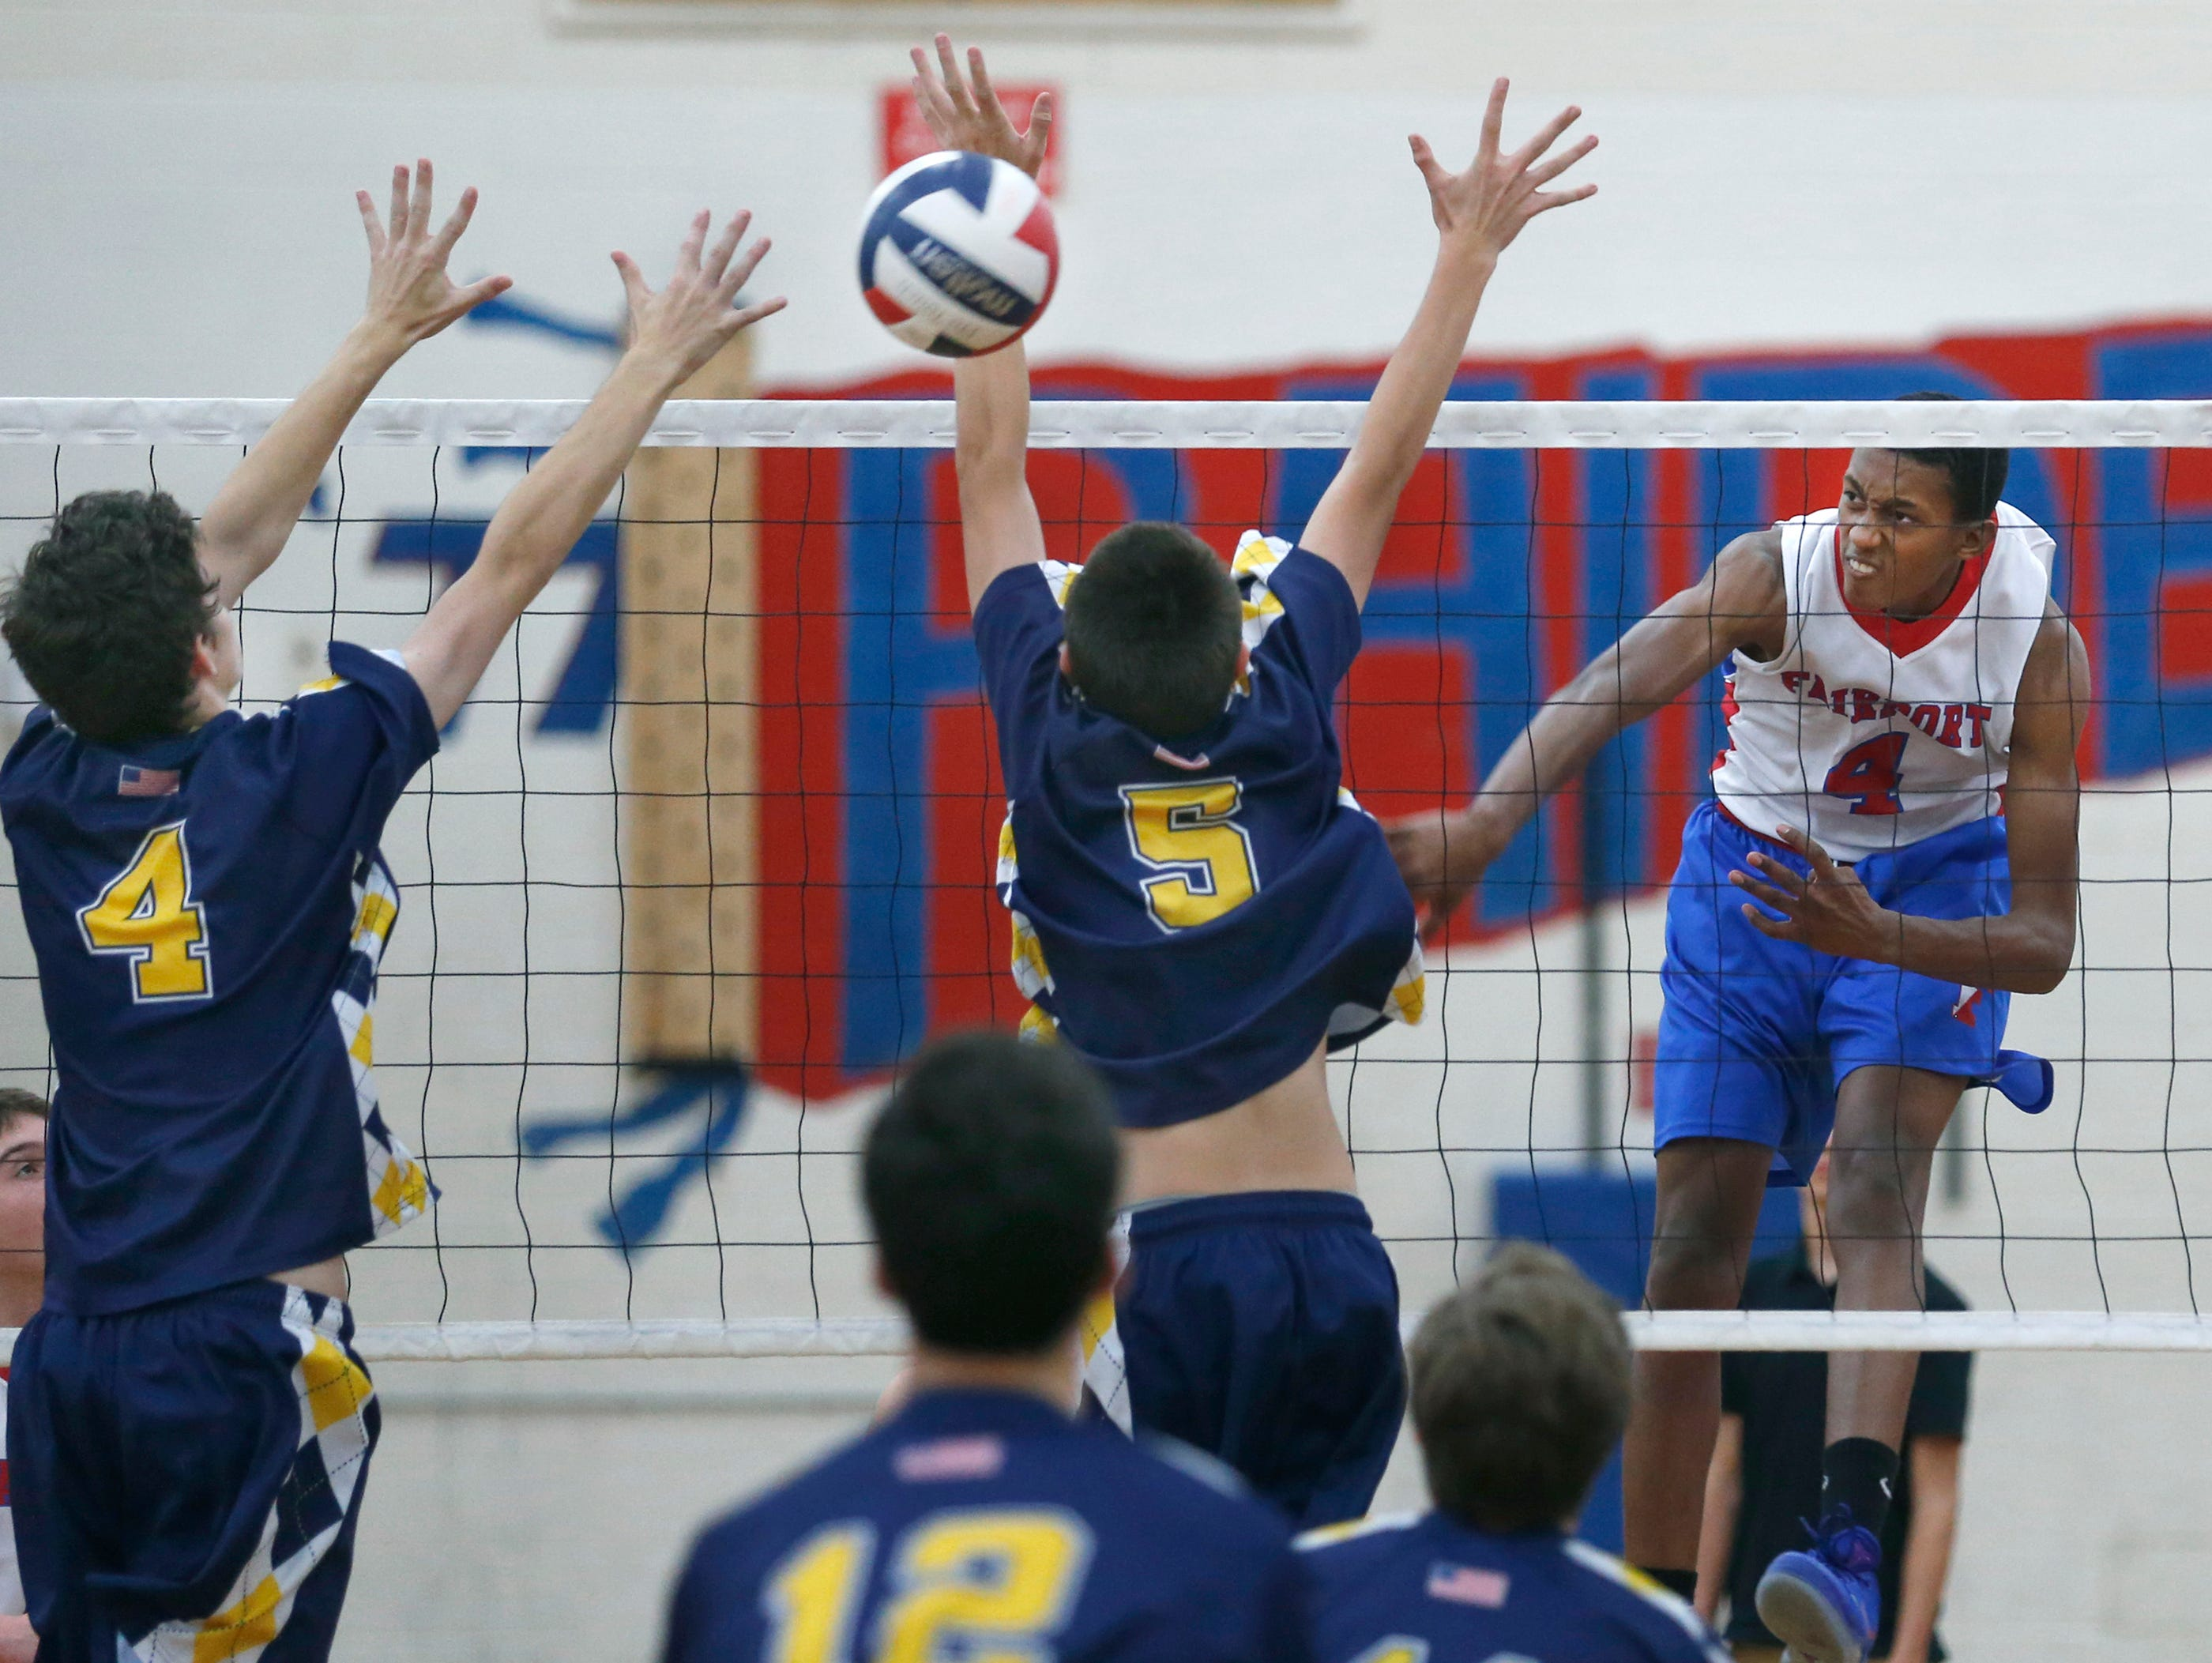 Fairport's Donovan Dey attacks against Victor's Hayden Hall and Cam Clark in the second set at Fairport High School.